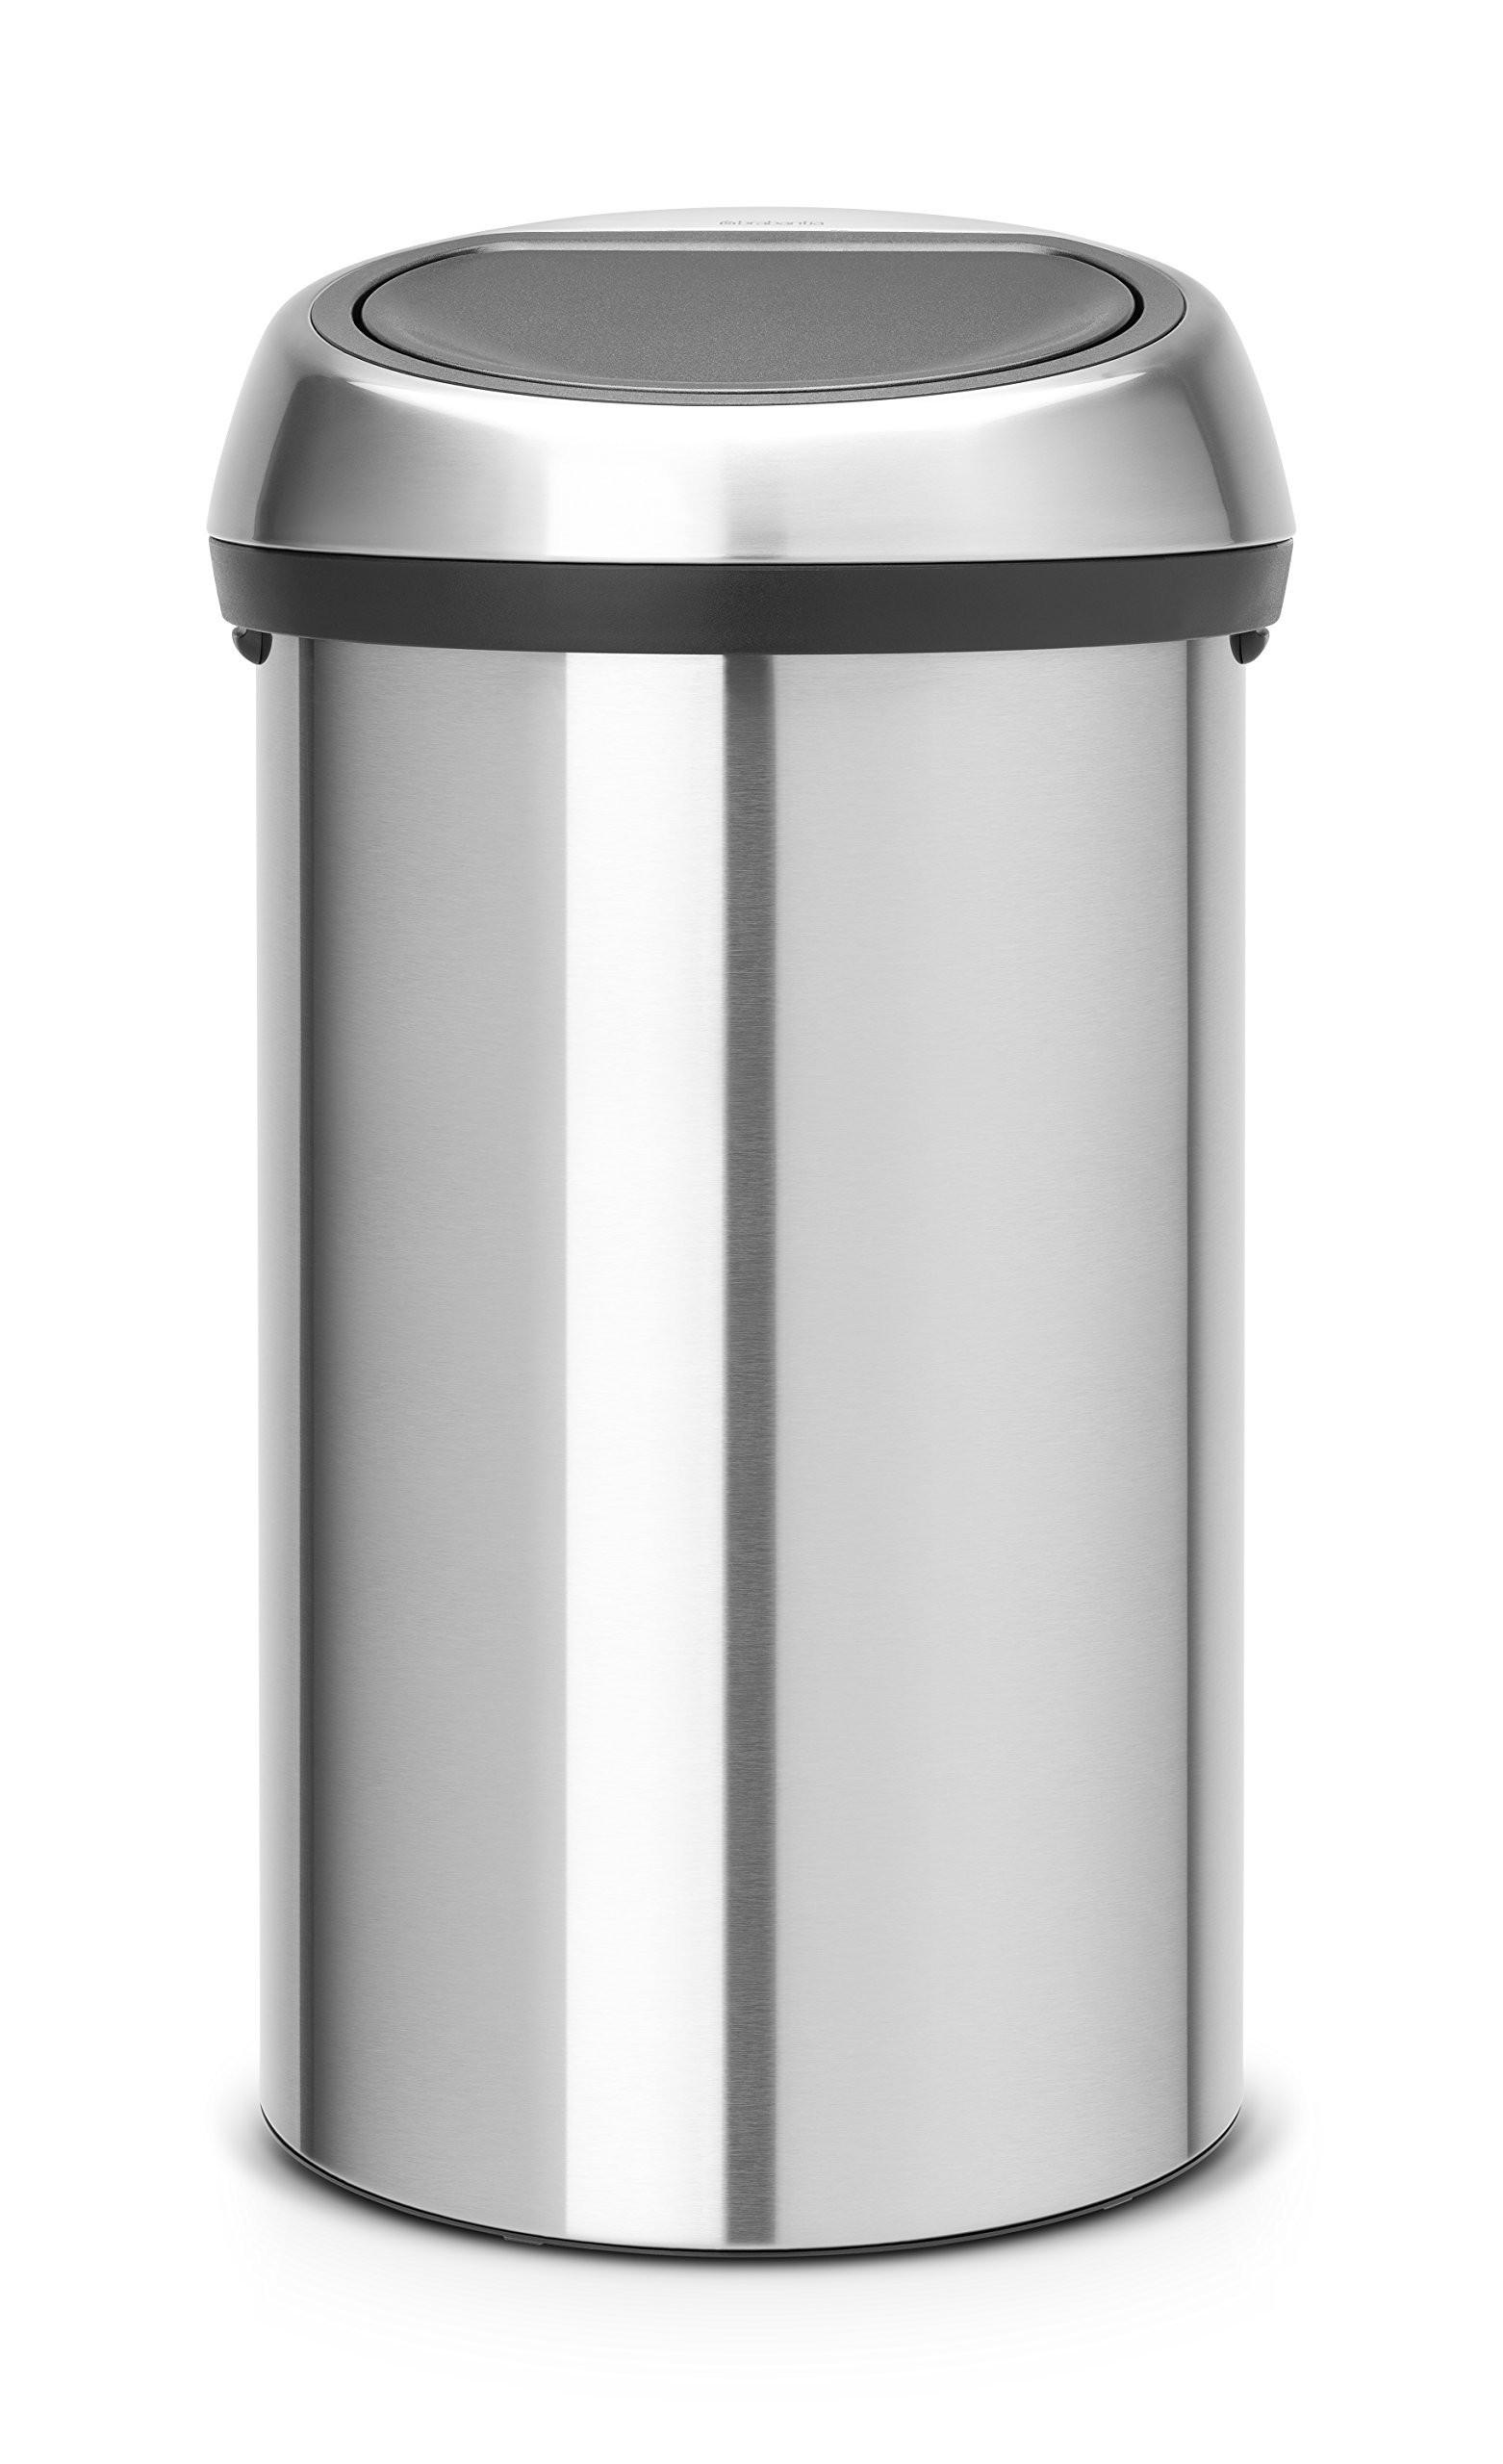 Brabantia Touch Trash Can 16 gallon/60 liter - Matte Steel Fingerprint-Proof, 484506